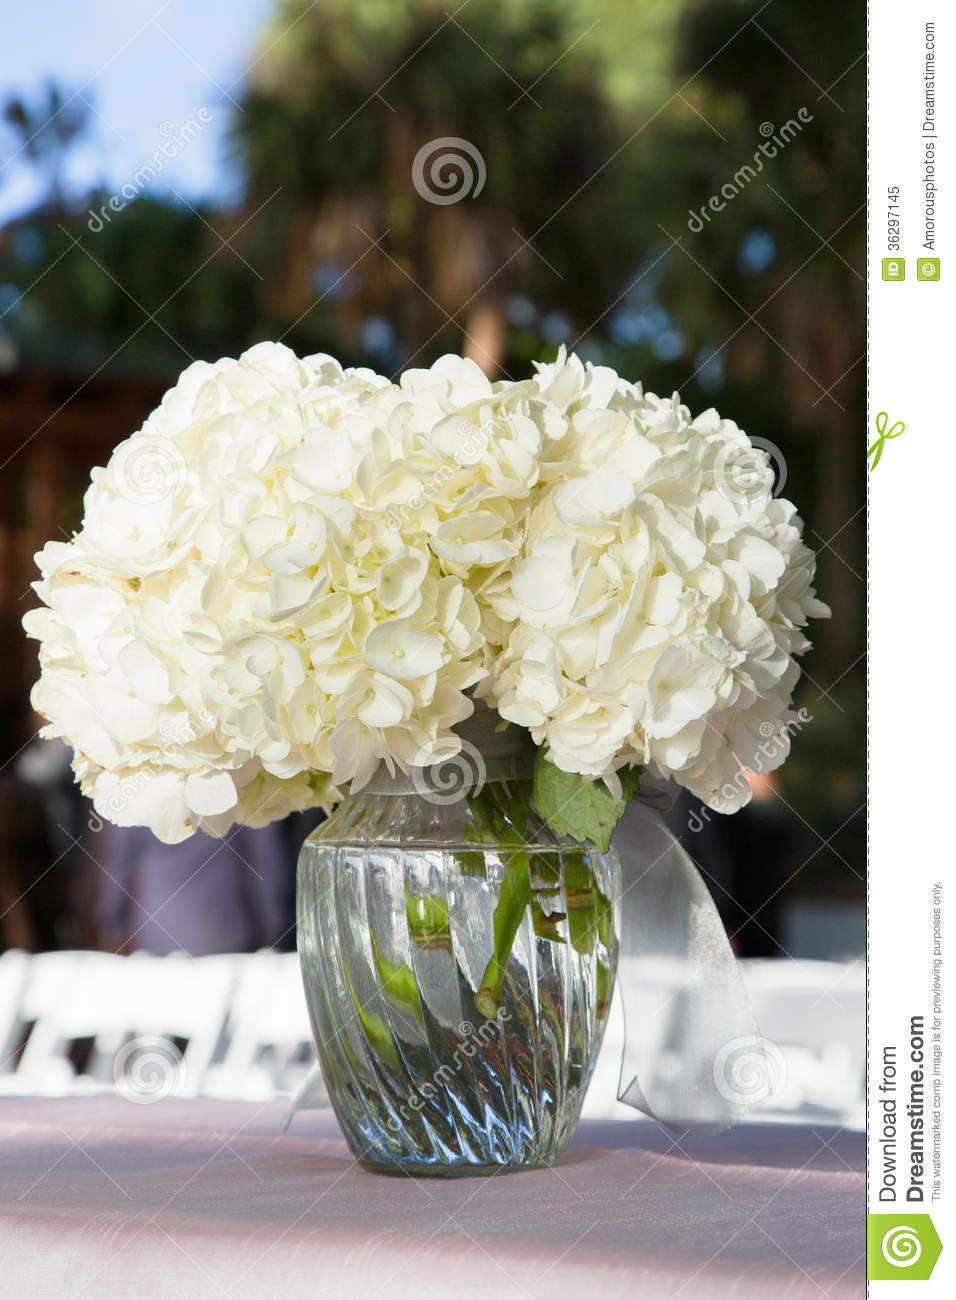 White Flowers In Glass Vase Royalty Free Stock Photo